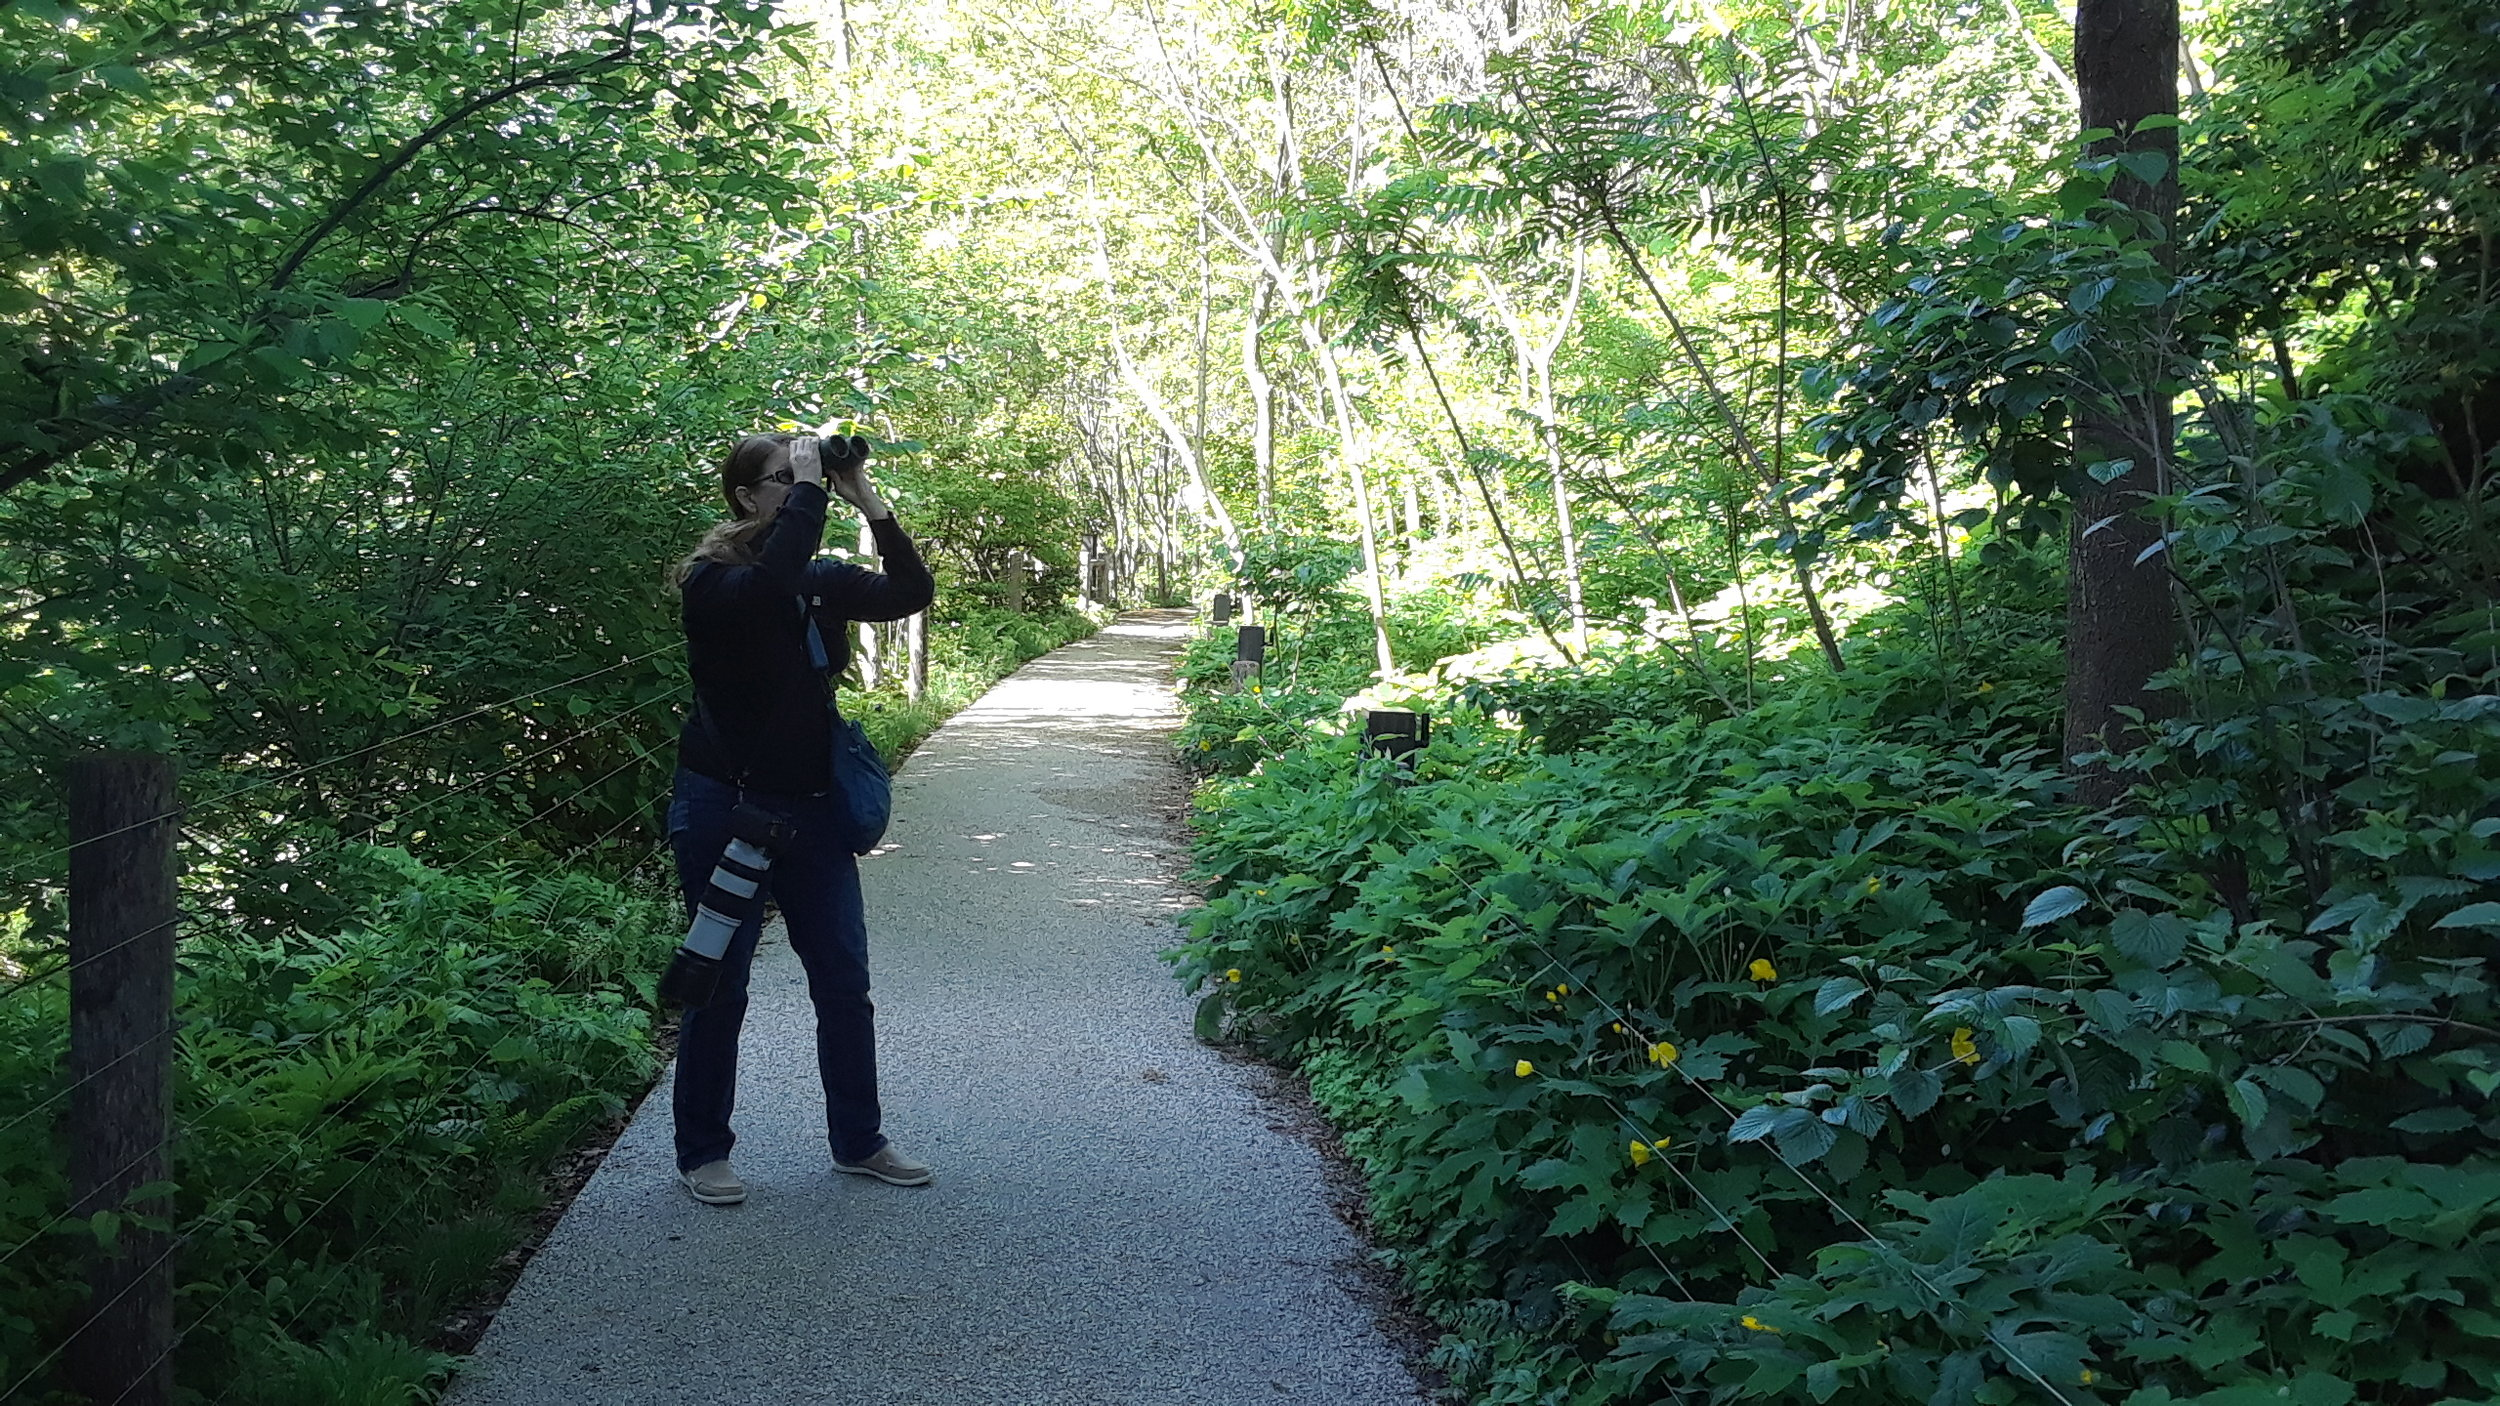 Wolf birding (camera at the ready!) in Brooklyn Bridge Park.